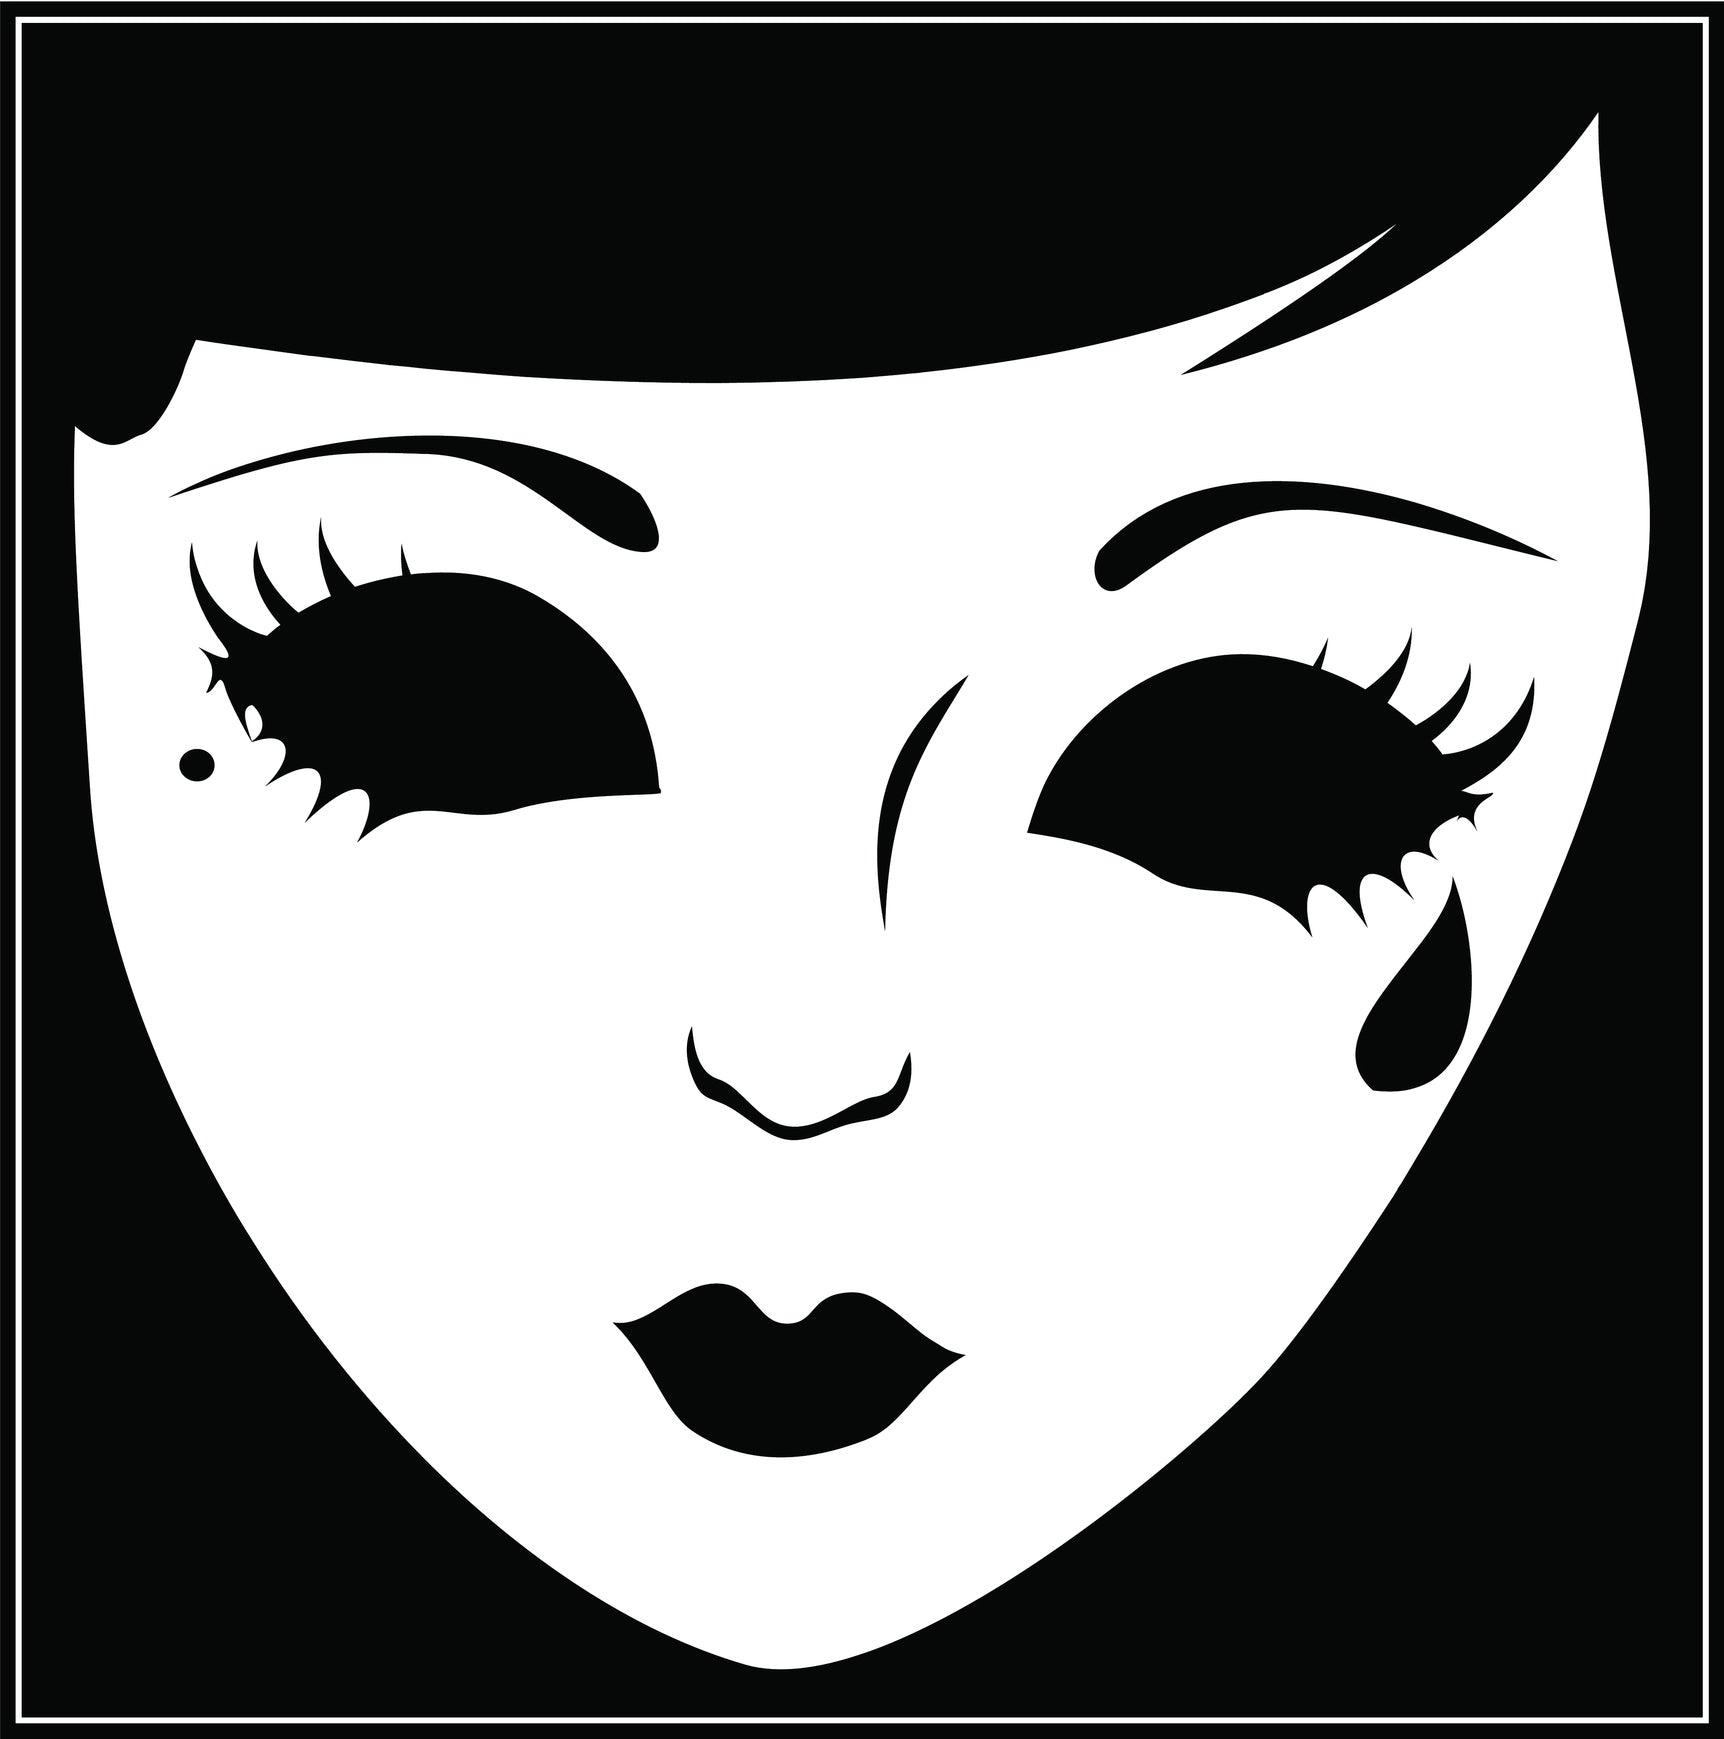 Creepy Emo Punk Demon Girl Face with Black Eyes Border Around Image As Shown Vinyl Decal Sticker